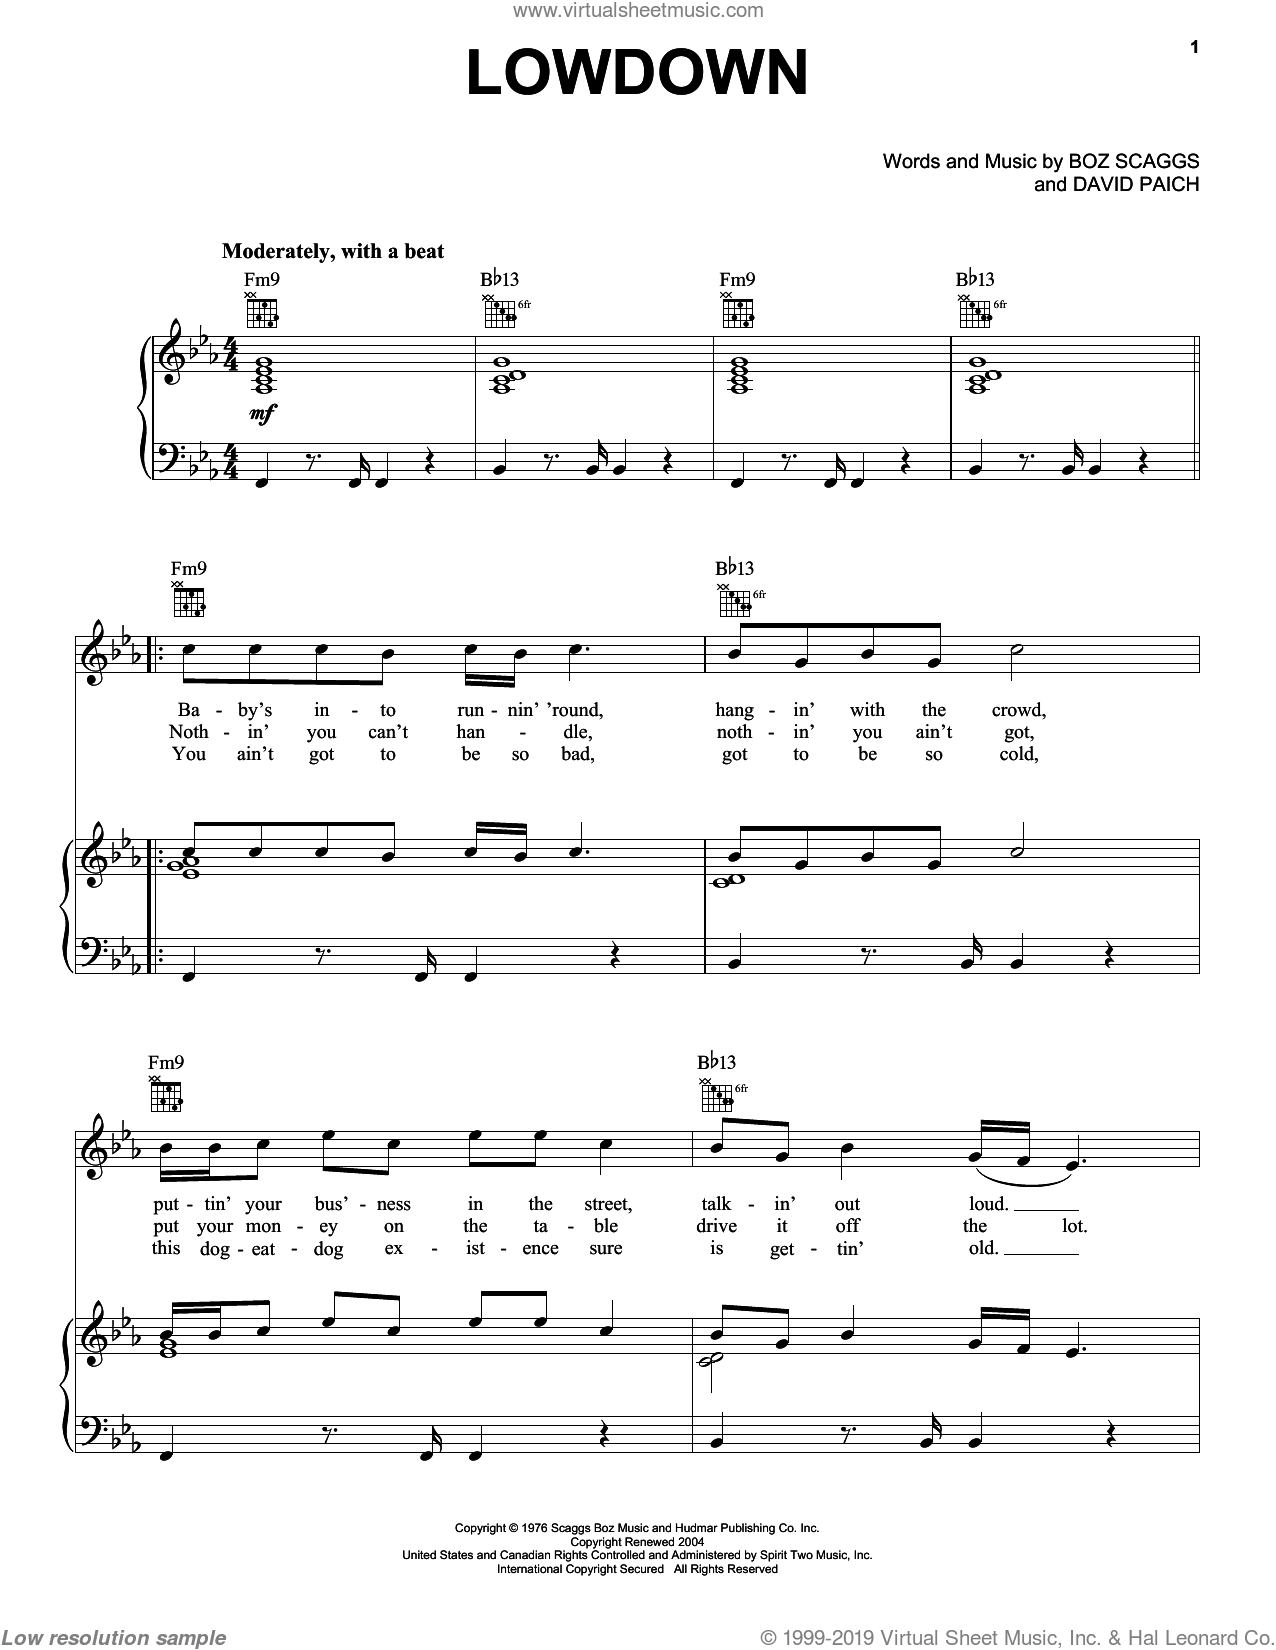 Lowdown sheet music for voice, piano or guitar by Boz Scaggs and David Paich, intermediate skill level